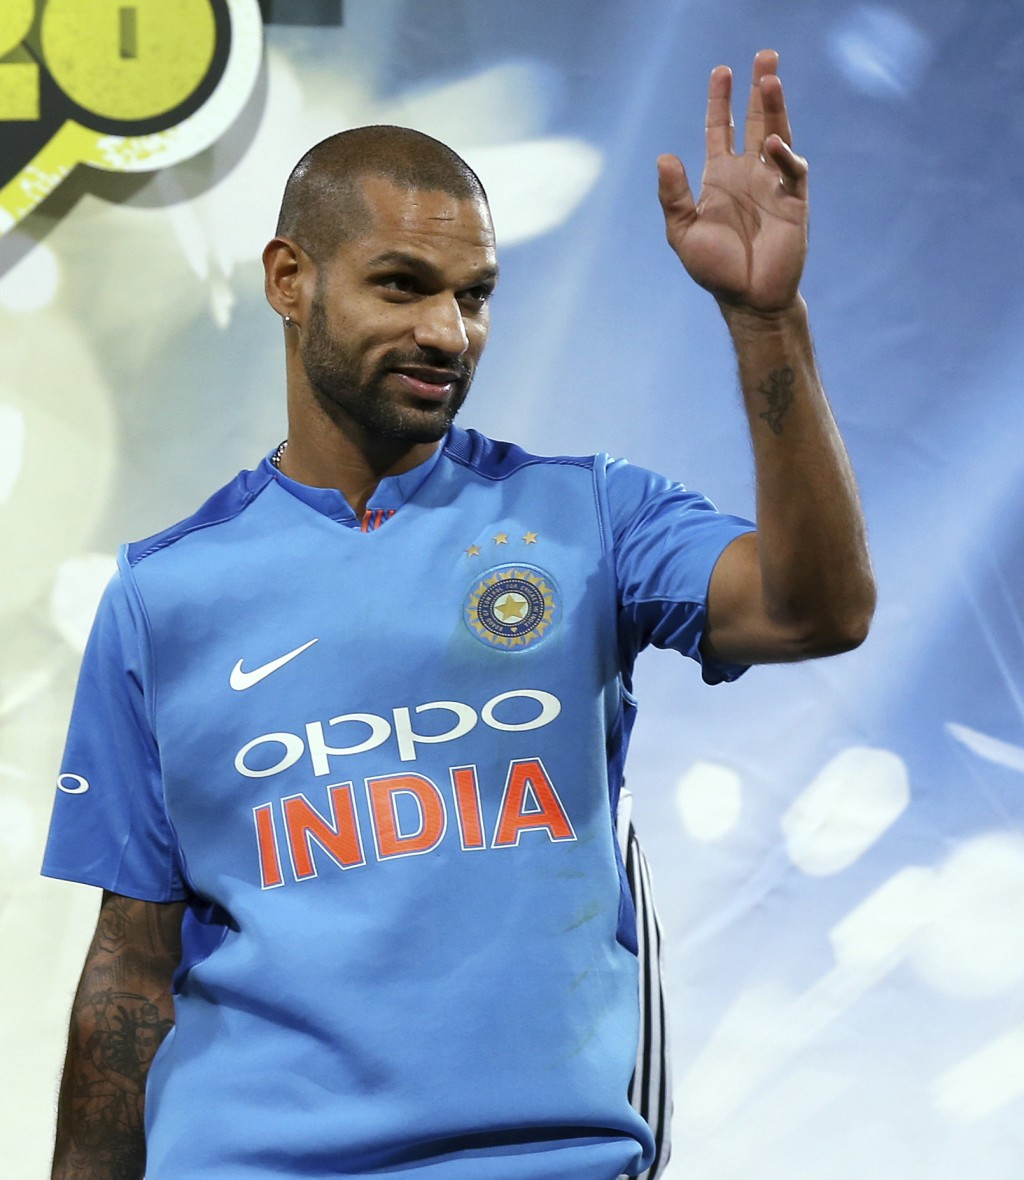 India's Shikhar Dhawan waves after being named man of the series after their Twenty20 cricket match against Australia in Sydney, Sunday, Nov. 25, 2018...